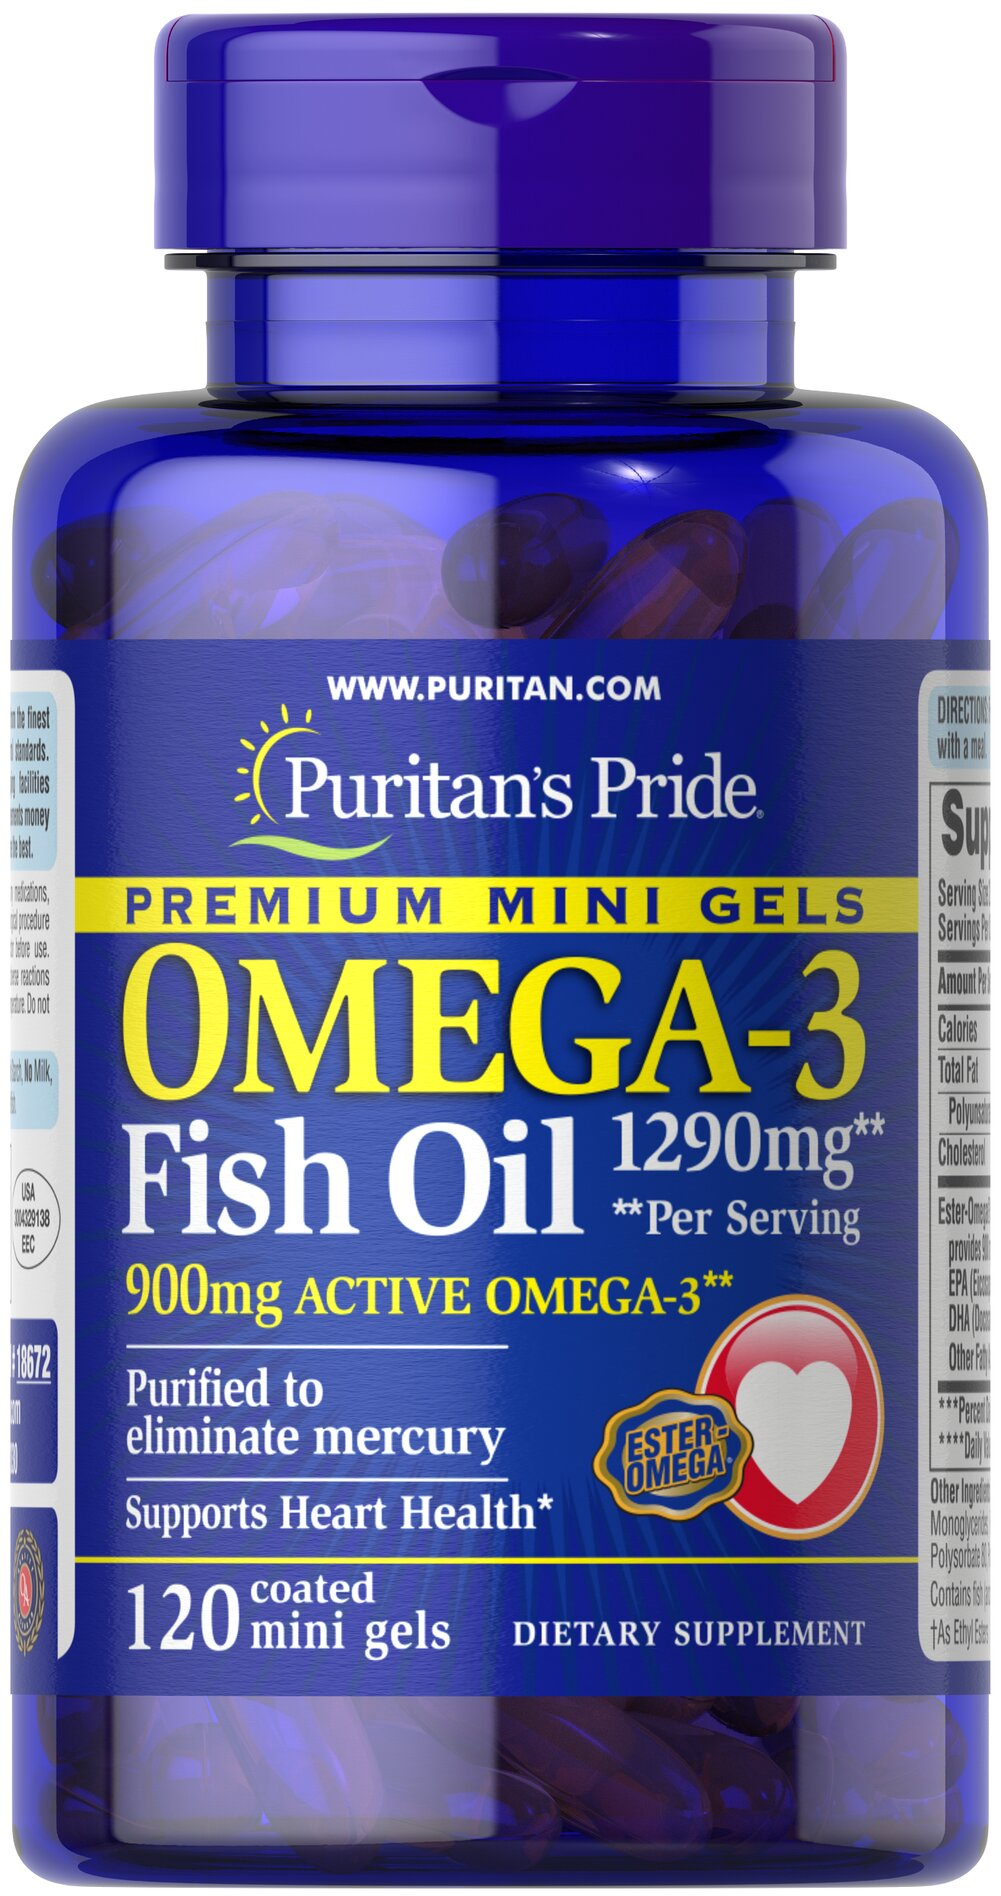 Omega-3 Fish Oil 645 mg Mini Gels (450 mg Active Omega-3)  120 Coated Softgels 645 mg $42.99